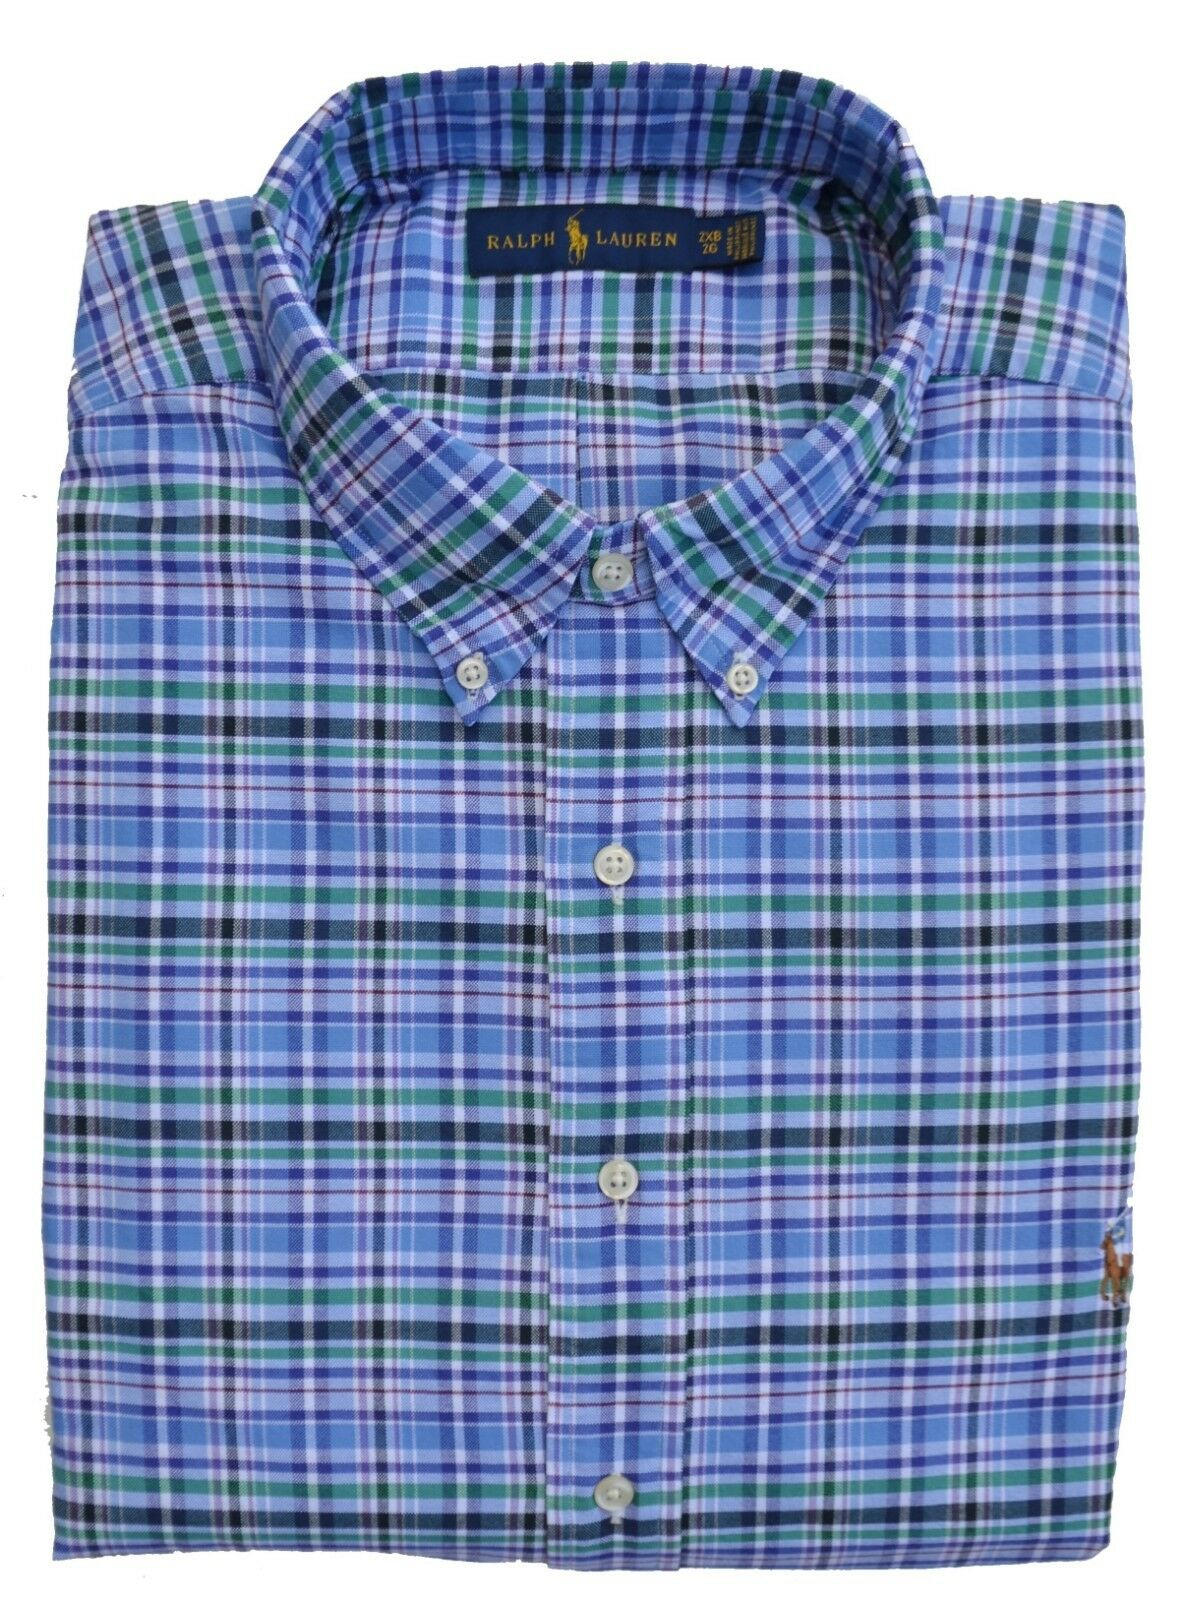 RALPH LAUREN BIG & TALL - HEMD BUTTON DOWN - blue kariert - 2XB 3XB 5XB - NEU